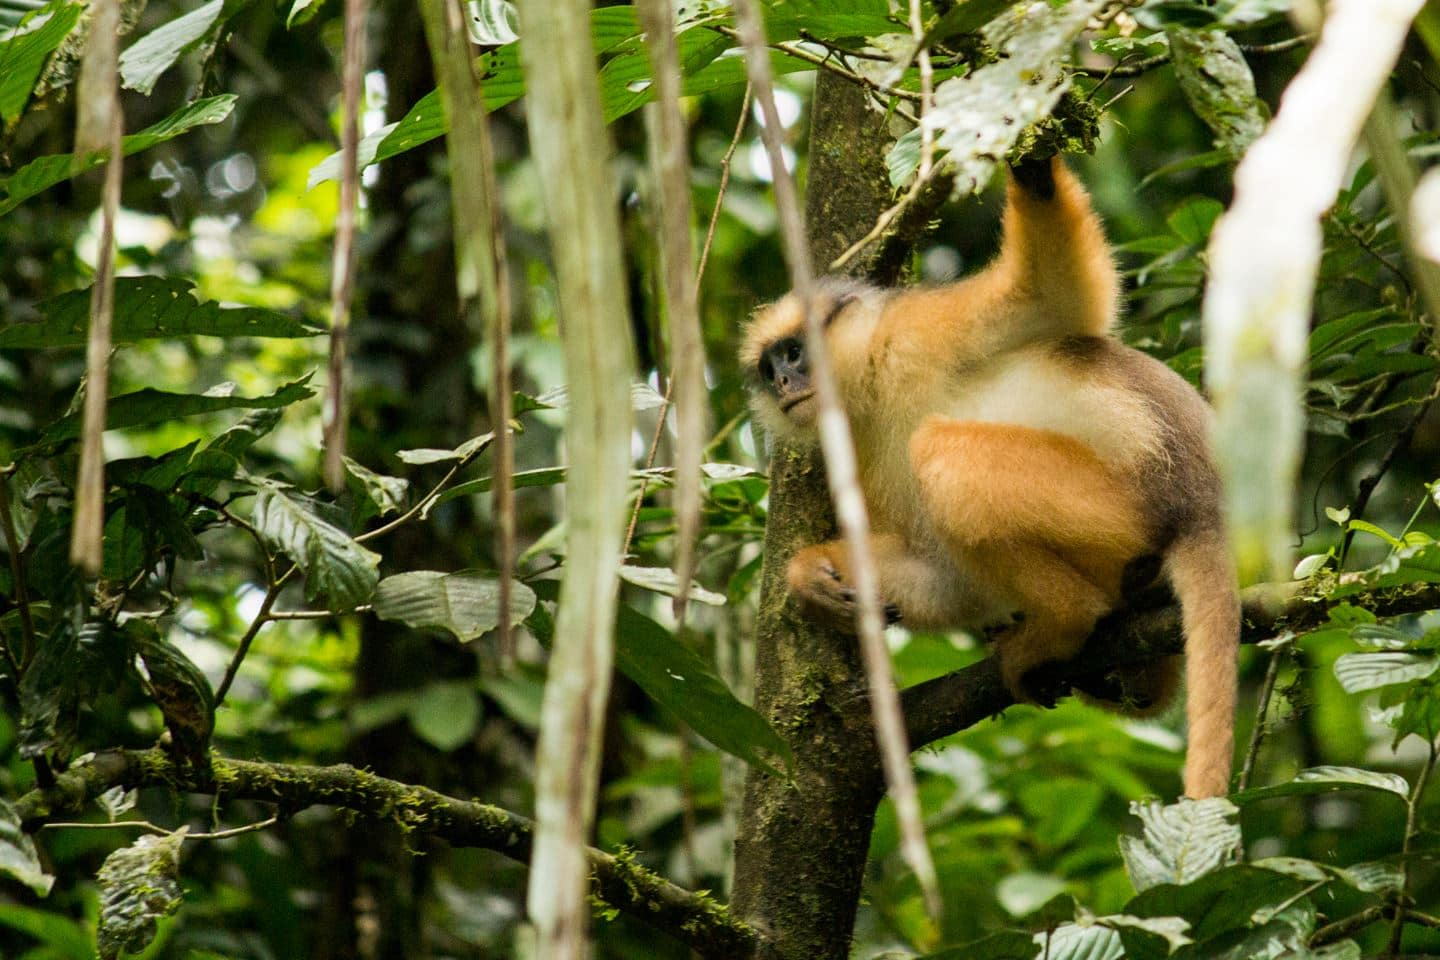 langur leaf monkey in Kerinci, seen while jungle trekking Sumatra